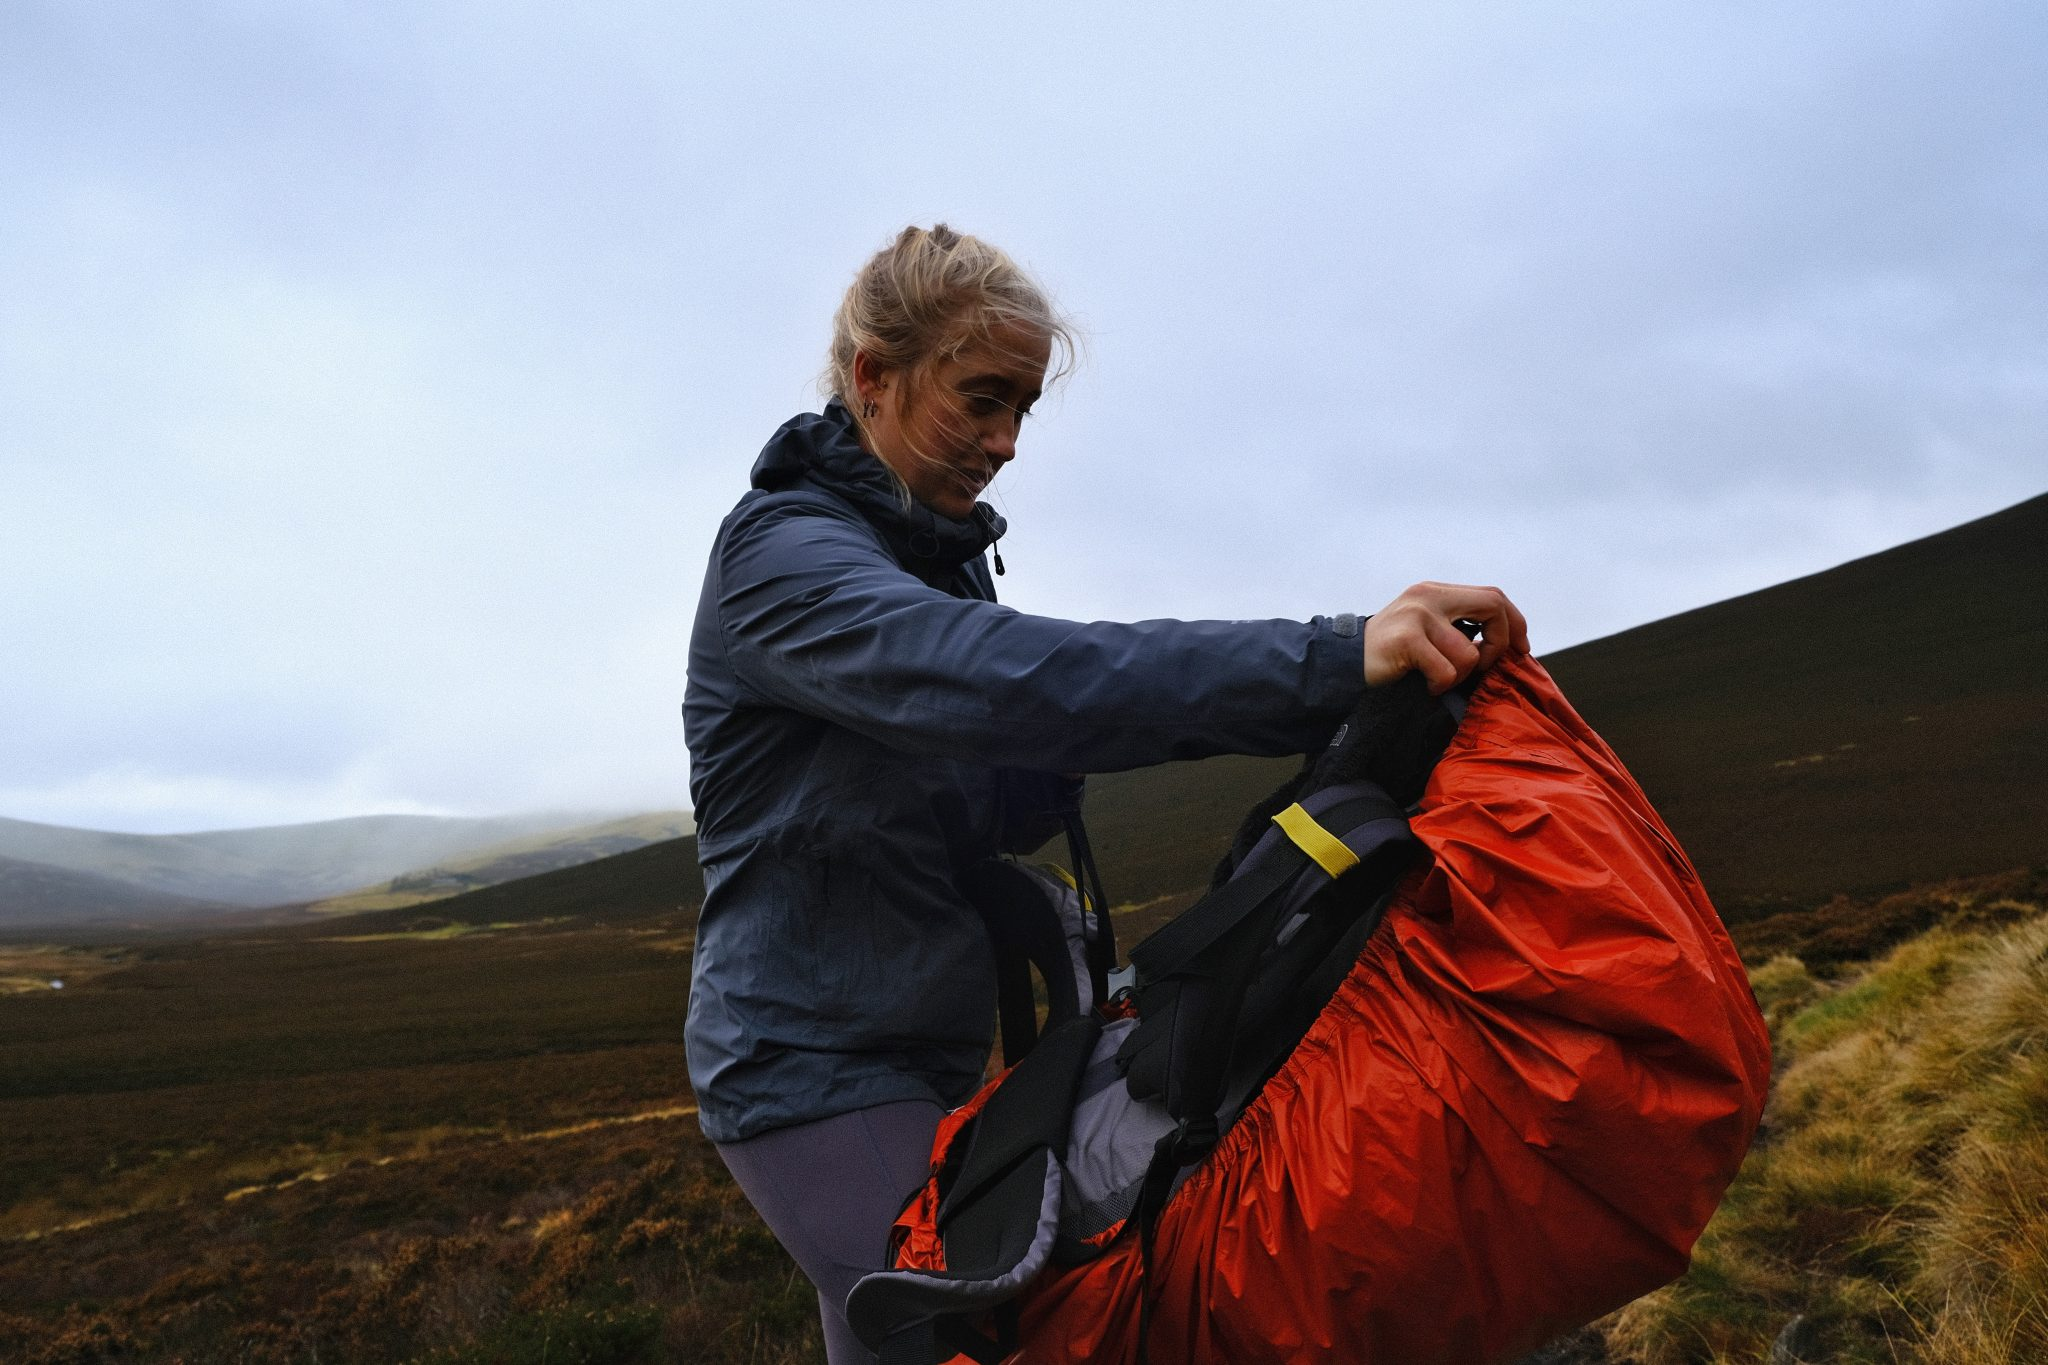 Girl backpacker putting on waterproof bag cover